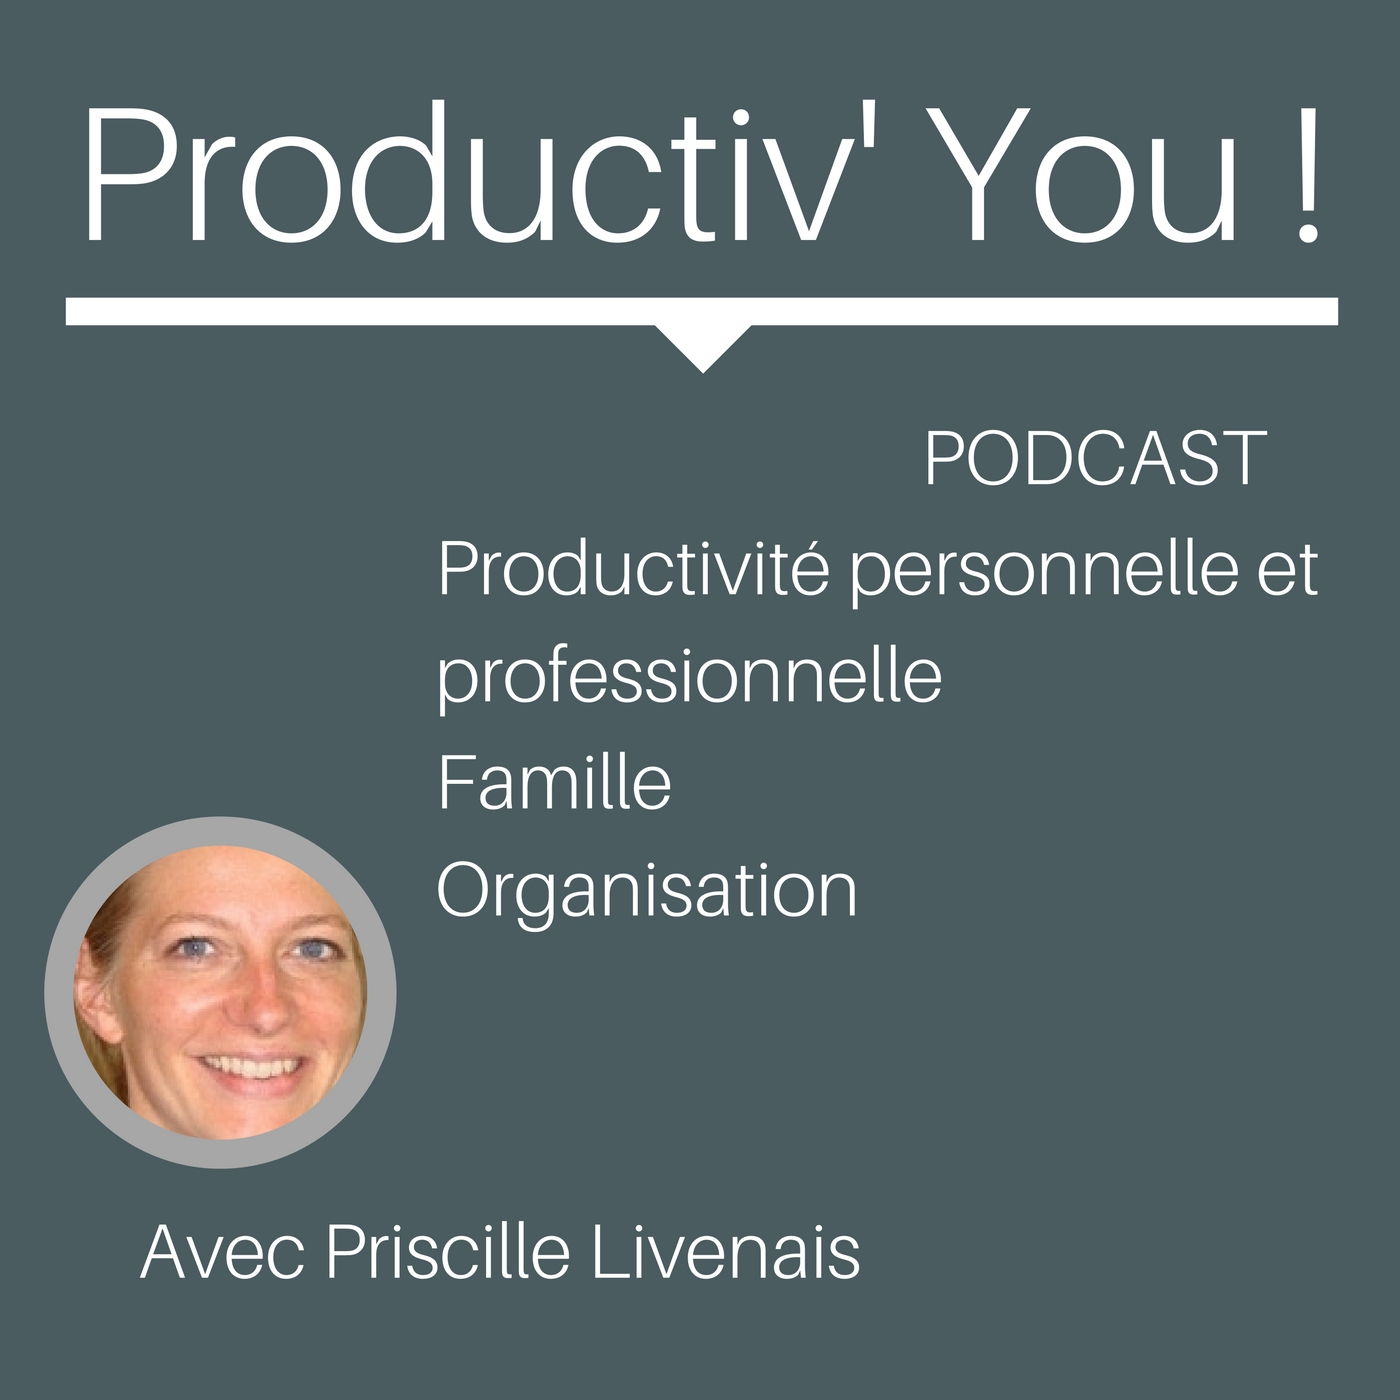 Productiv' You !